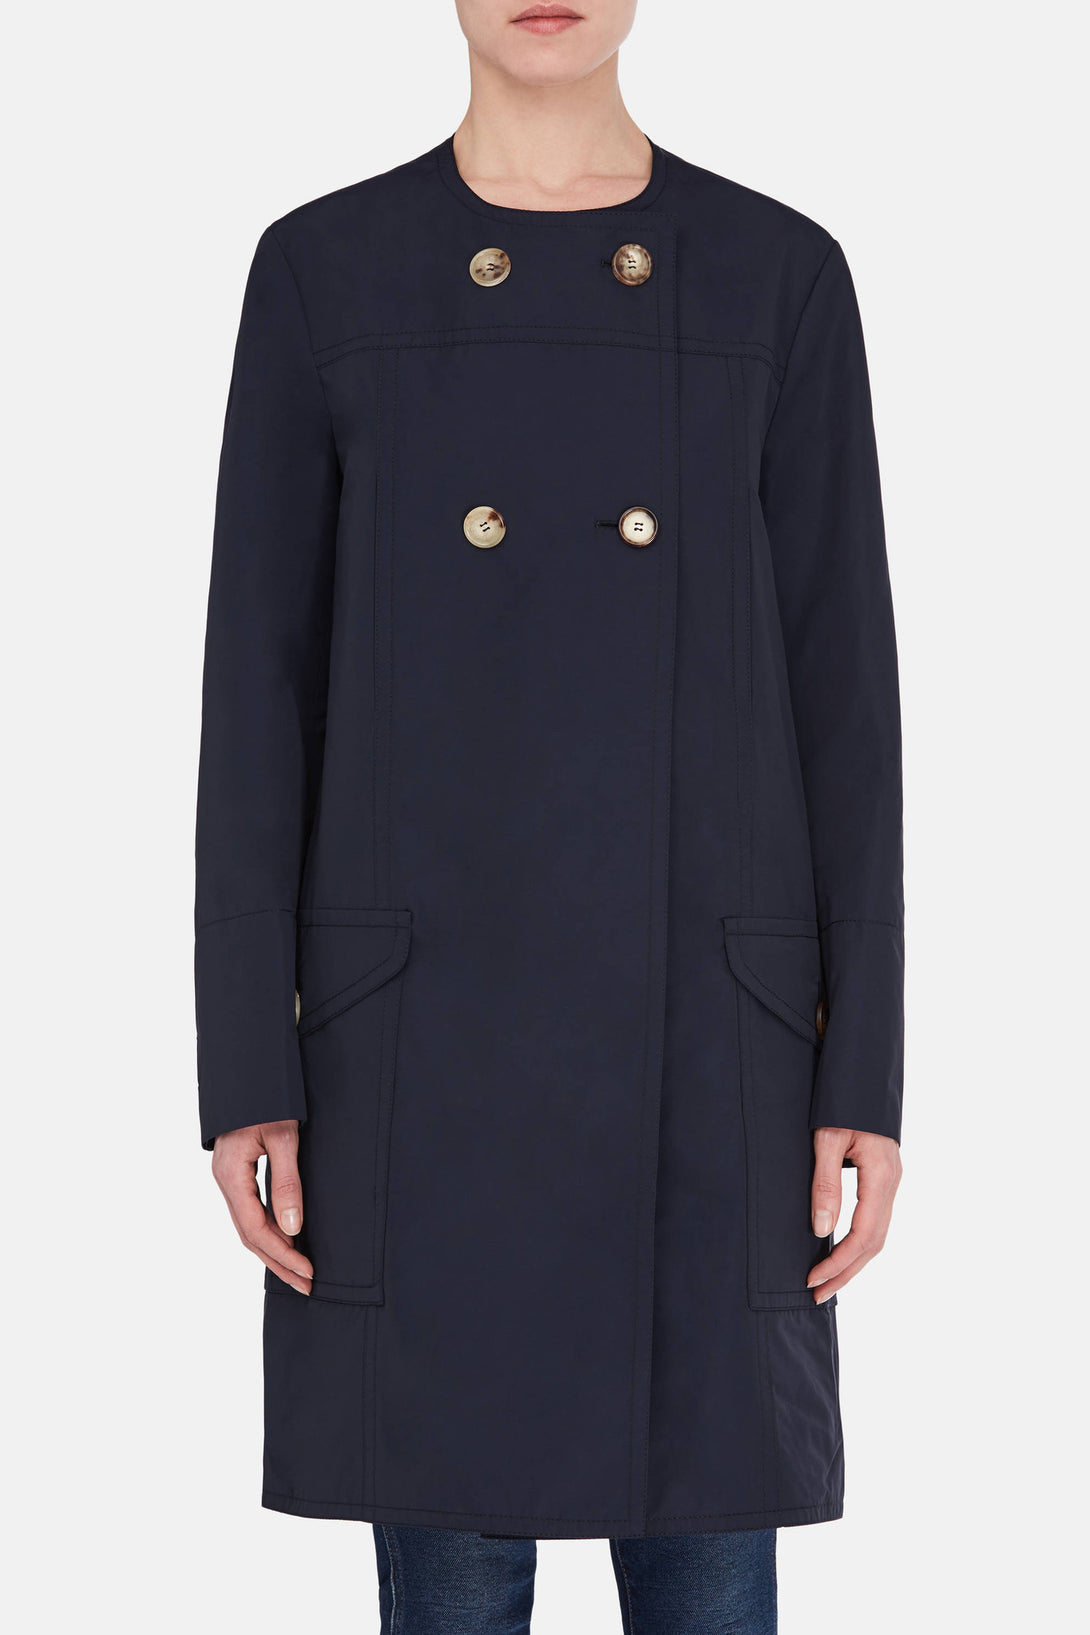 Duster Coat - Blublack